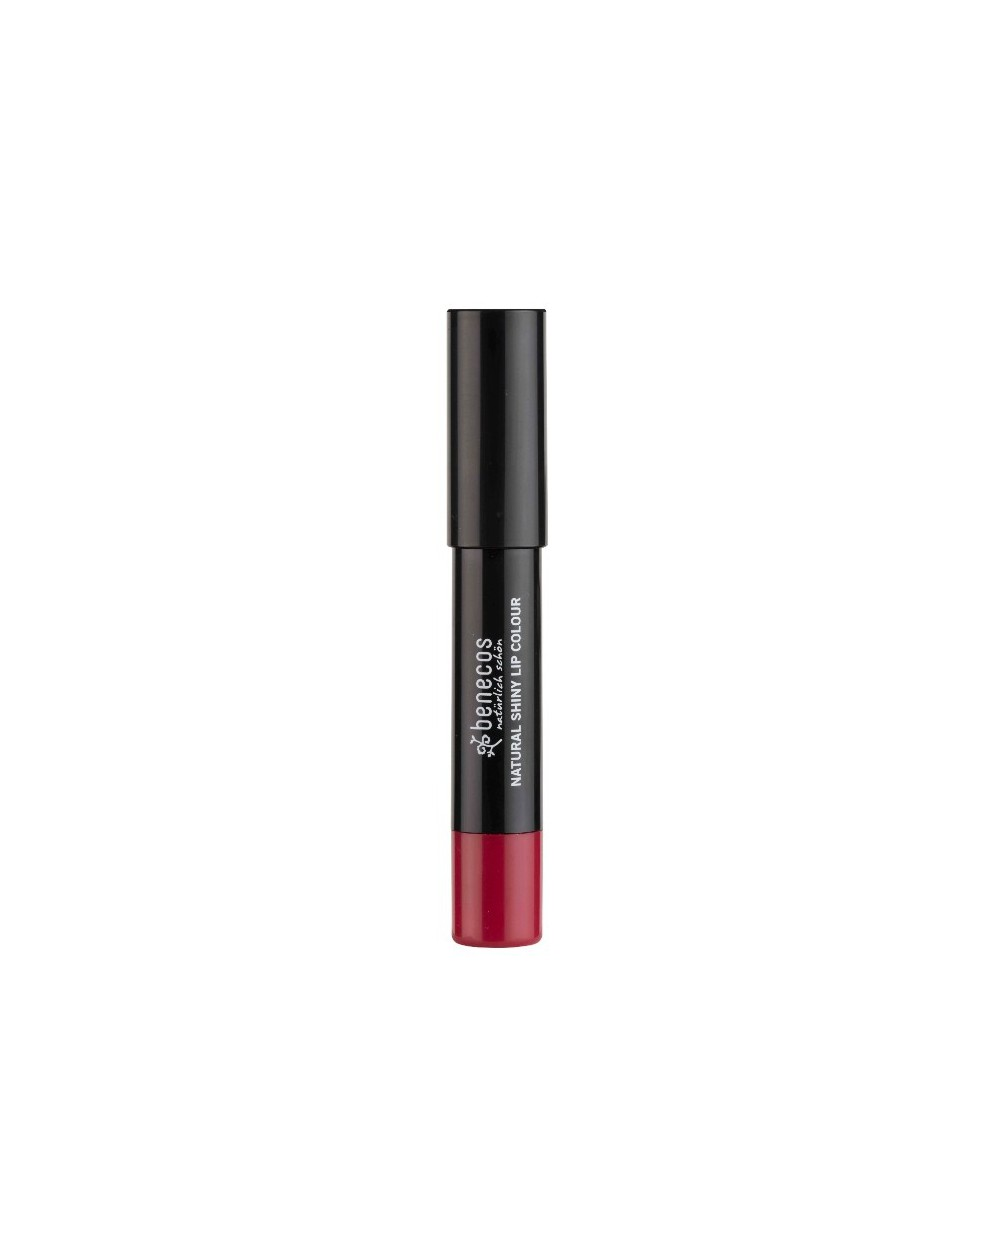 Benecos Shiny Natural Lip Colours - Silky Tulip